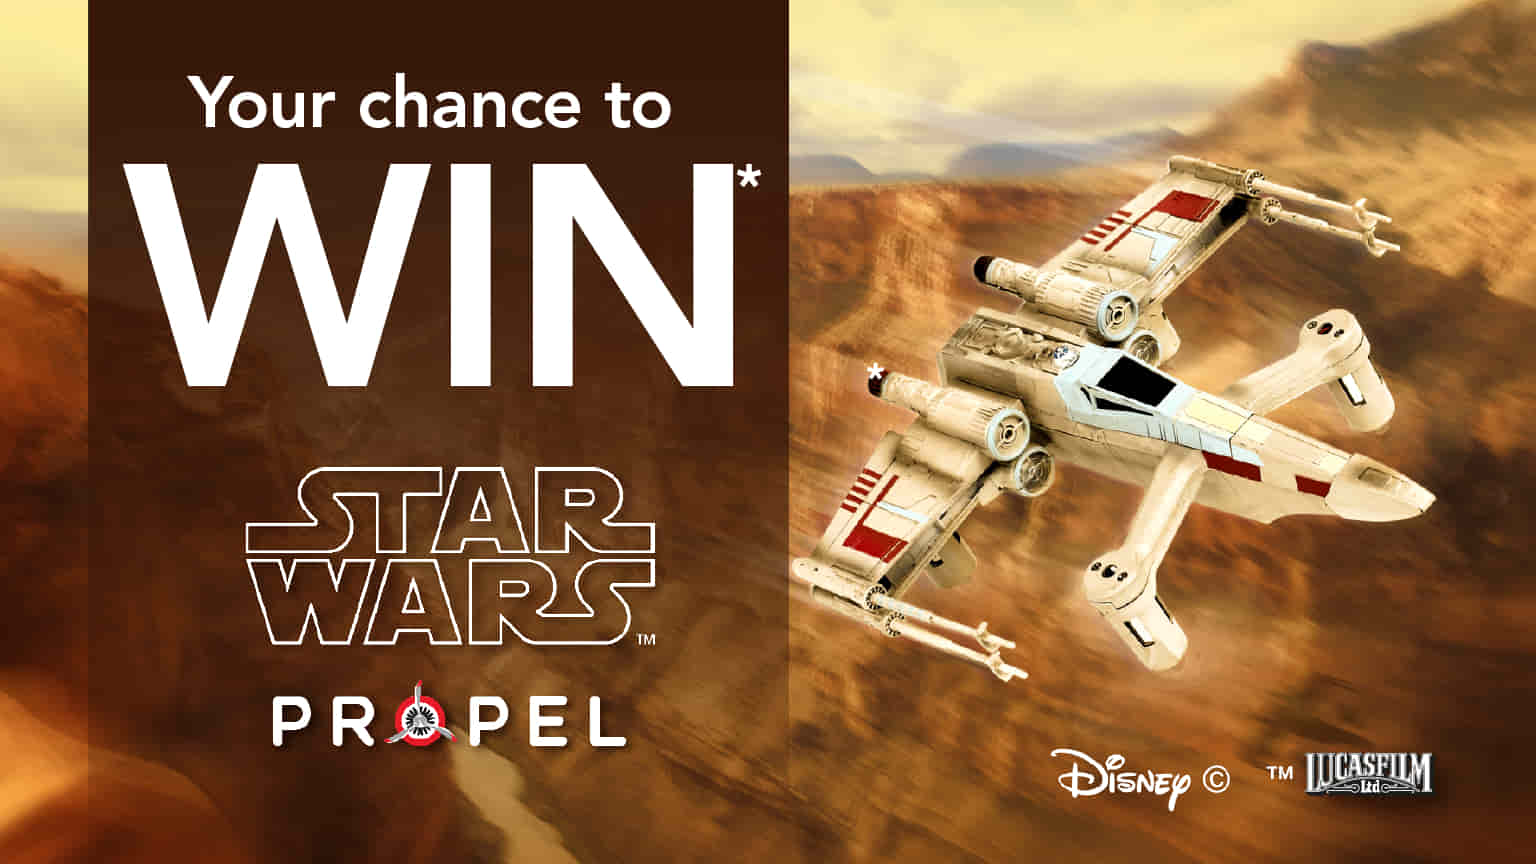 Sign Up & Win Disney Star Wars Laser Battle Drone